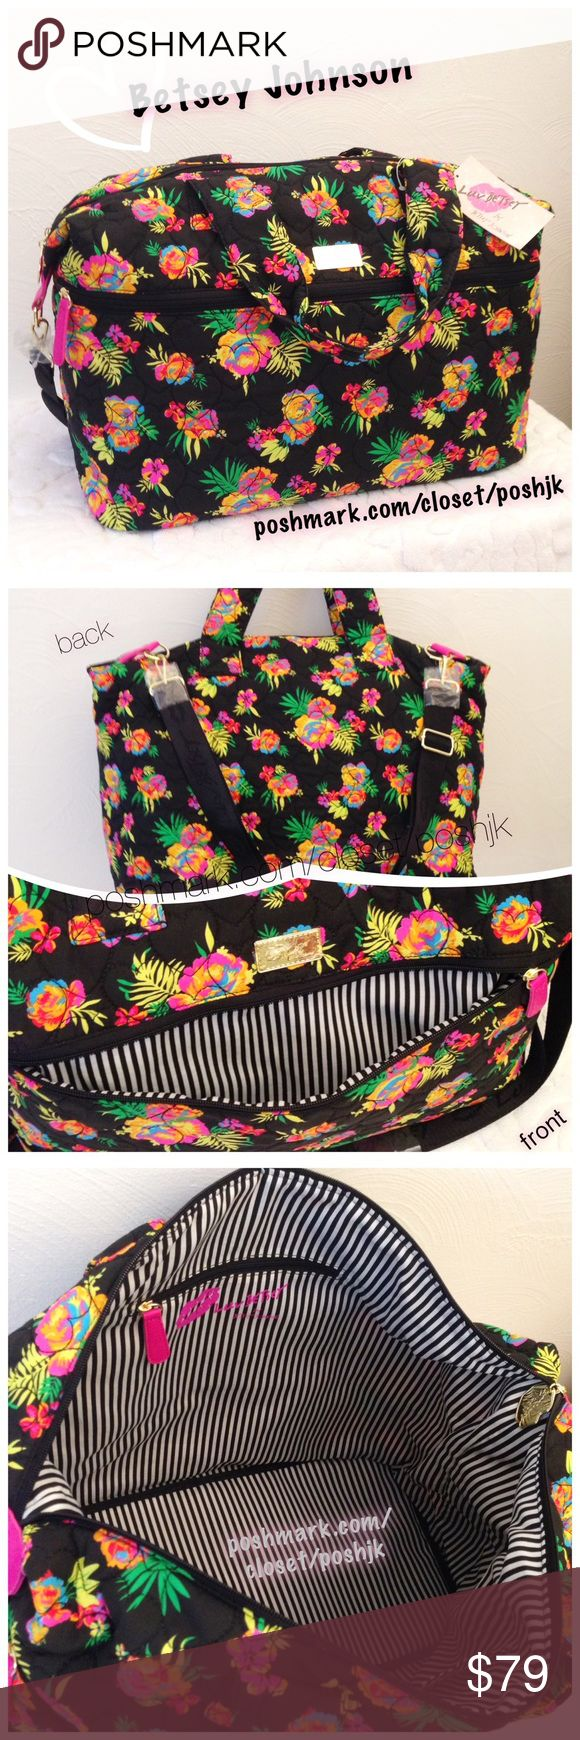 "NWT 💕Betsey Johnson Weekender Bag Brand New With Tag Betsey Johnson Weekender.  Gorgeous Heart-Stitched Quilted Floral. Dual Carry Handles. Removable Nylon Shoulder Strap in Betsey Logo has Adjustable Length.  Betsey's Signature Heart Nameplate & Zipper Pull.  Fully Lined.  Zip Closure.  Outside Front Zip Pocket.  Inside Zip Pocket, Open Pocket, & Pen Holders.  18"" Width, 9"" Depth, 12"" Height.  Retail value $88 + tax (Approx $94)  Top-Rated Seller.  Fast Shipper!  Thanks for Looking😊 🚫No…"